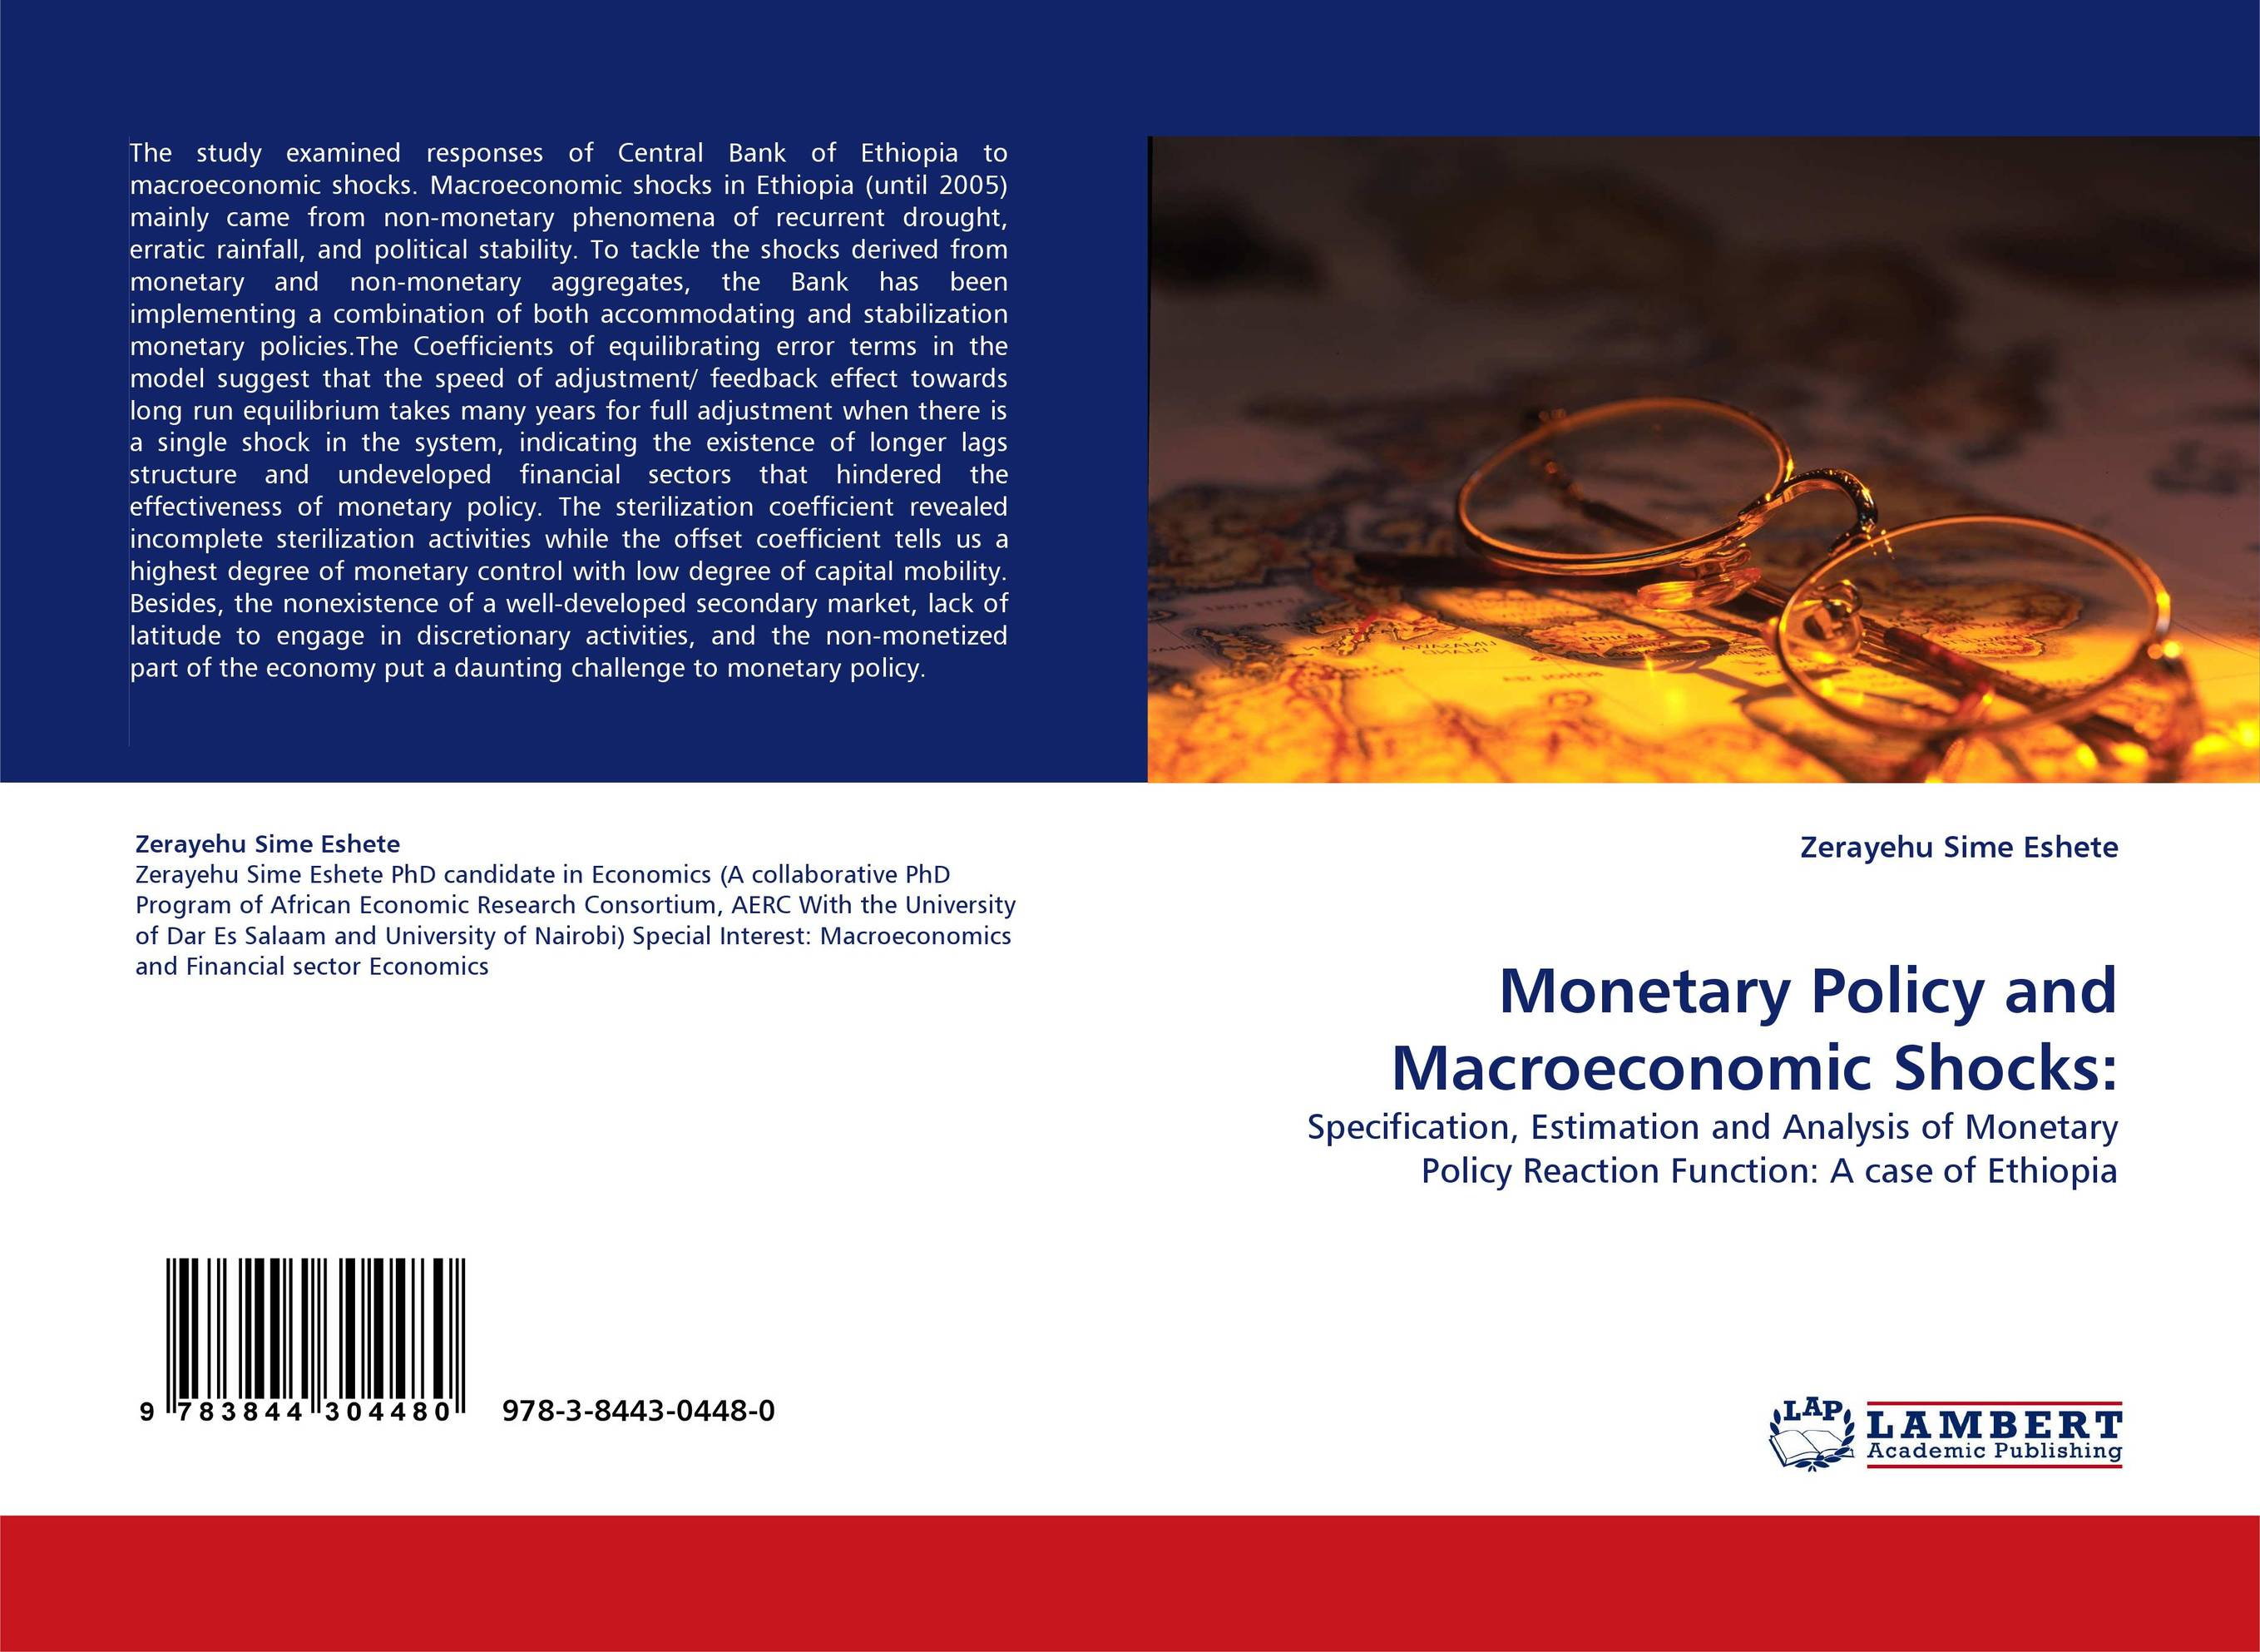 an analysis and an introduction to monetary devaluation Net worth, exchange rates, and monetary policy: the effects of a devaluation in a financially fragile environment domenico delli gatti, mauro gallegati, bruce c greenwald, and joseph e stiglitz.